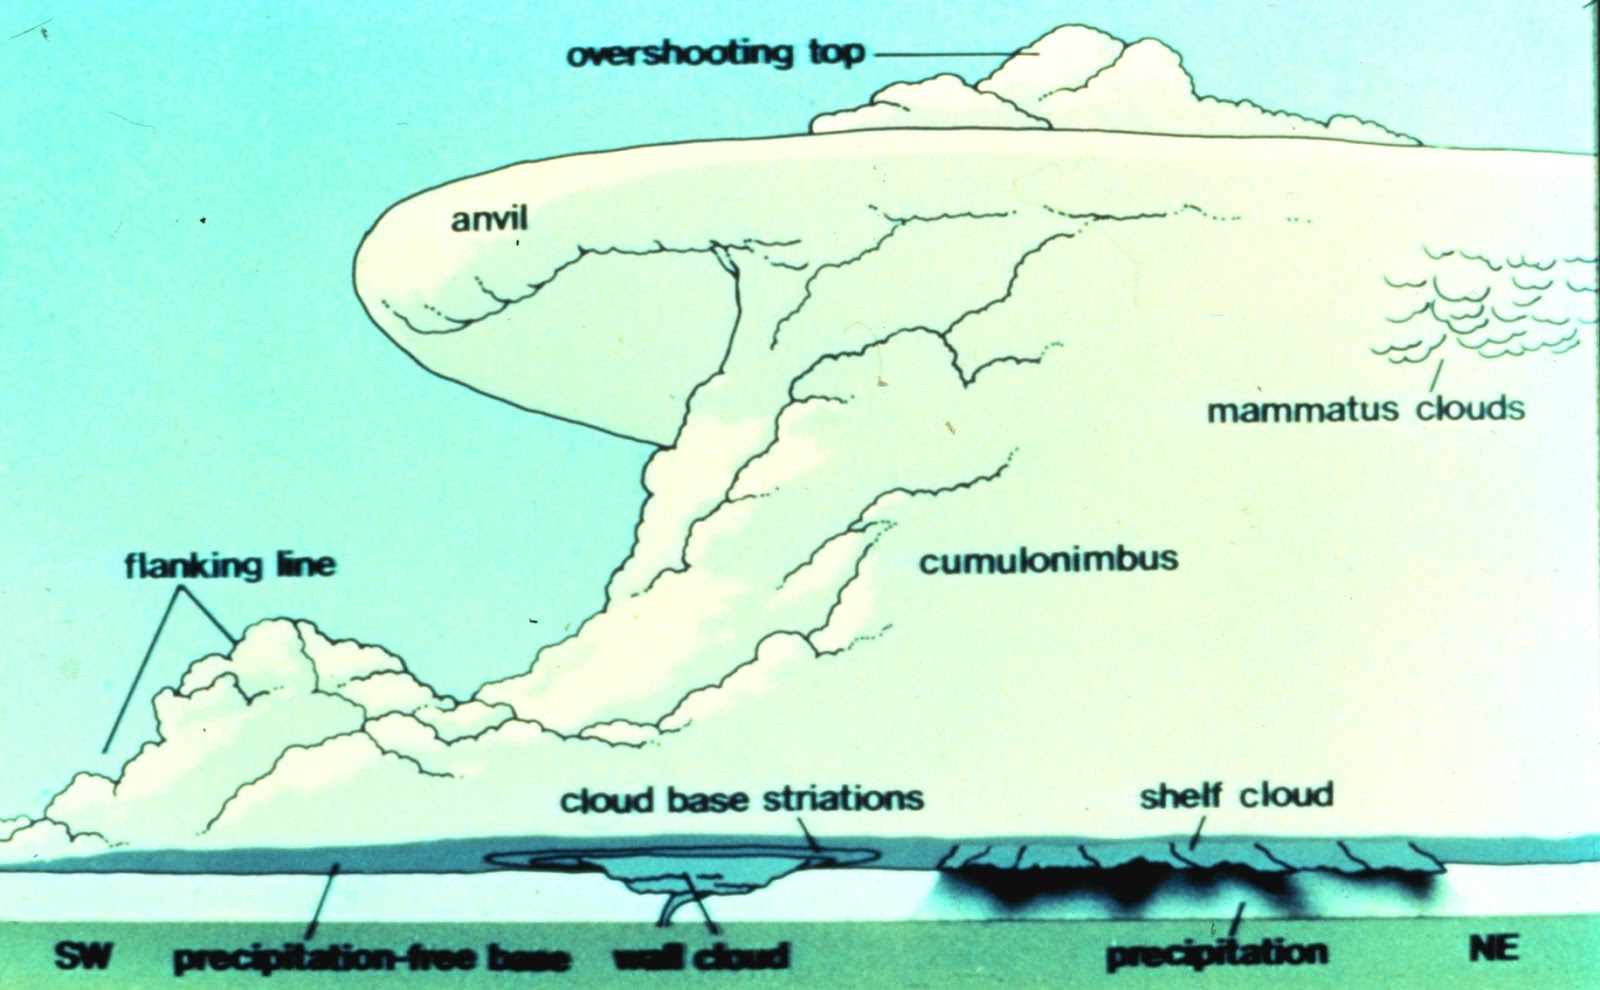 Features of a supercell. Note: This is a typical northwestward view in North America. Uploaded 10 Aug. 2005 by Demonburrito. Retrieved from Wikimedia Commons. Author: NOAA.